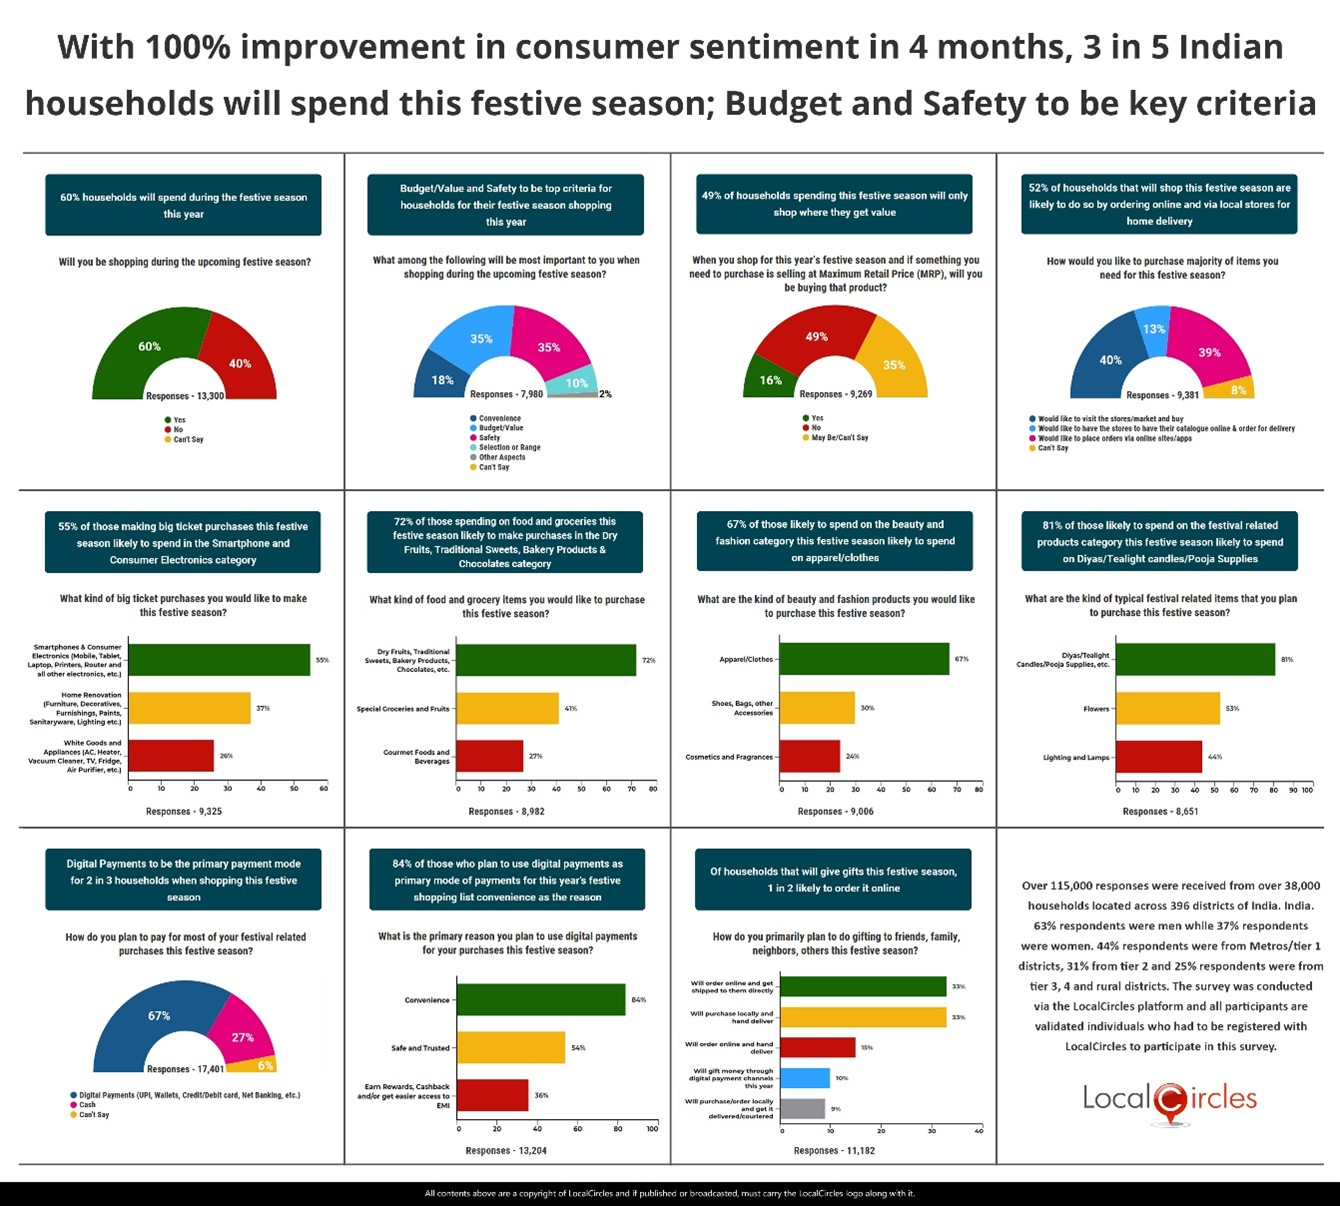 With 100% improvement in consumer sentiment in 4 months, 3 in 5 Indian households will spend this festive season; Budget and Safety to be key criteria